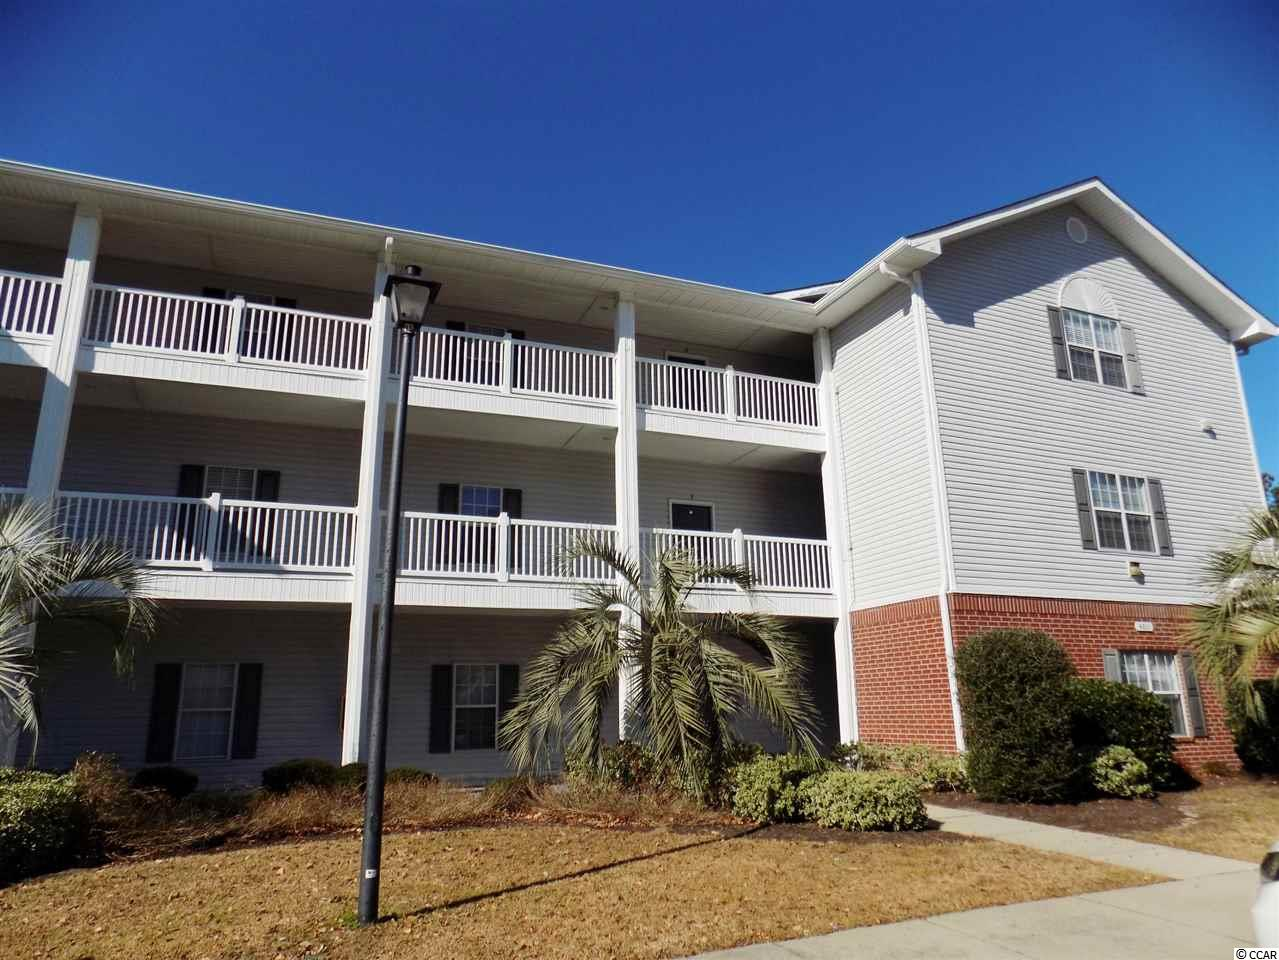 Lake/Pond View Condo in Bay Meadows : Myrtle Beach South Carolina